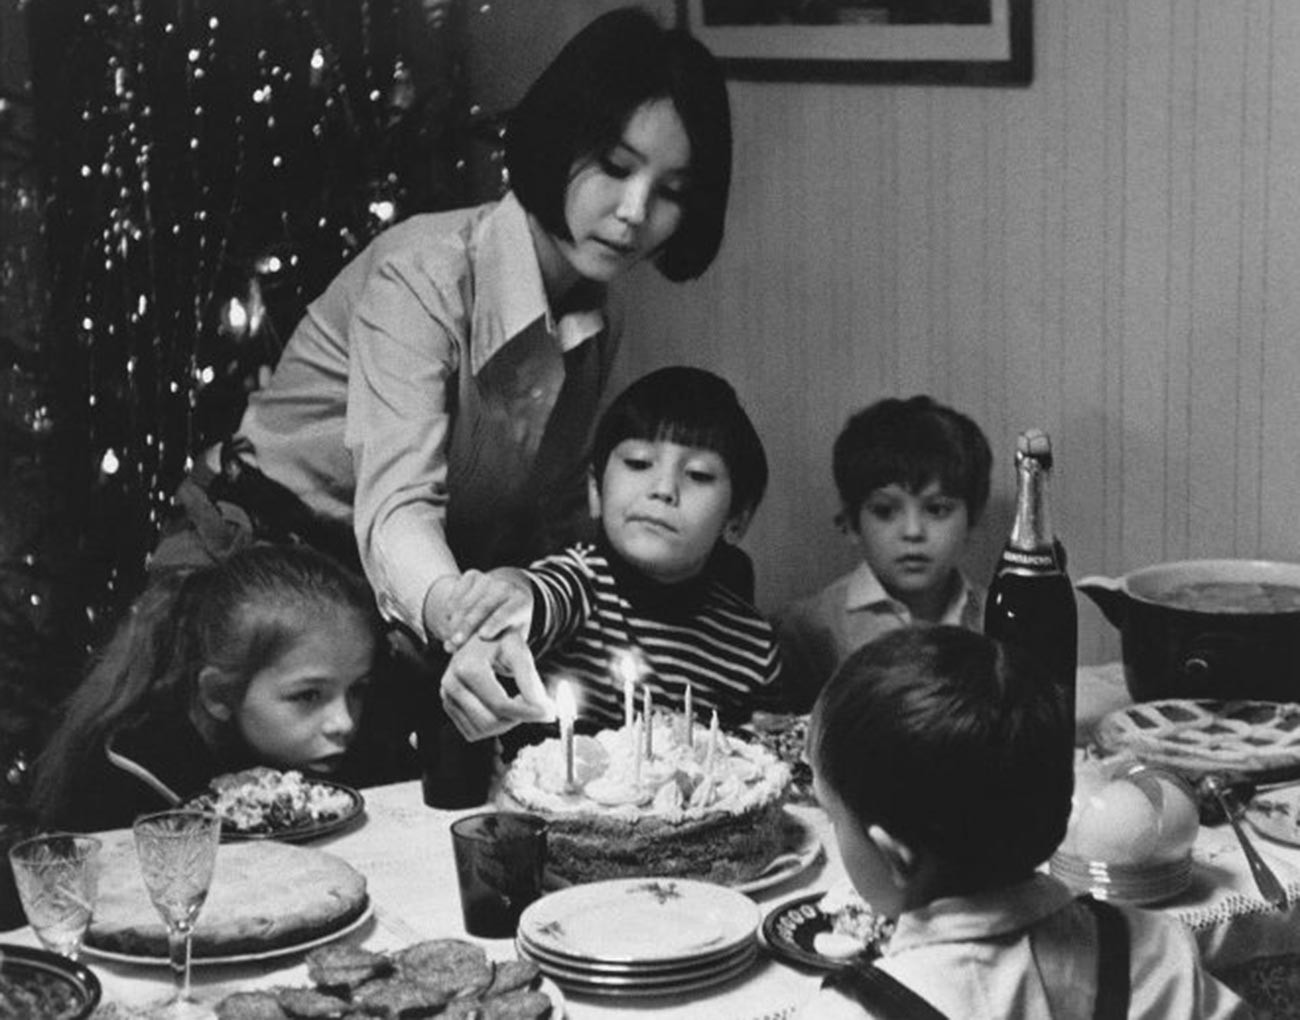 A birthday party of future Russian movie director Egor Konchalovsky in 1972.